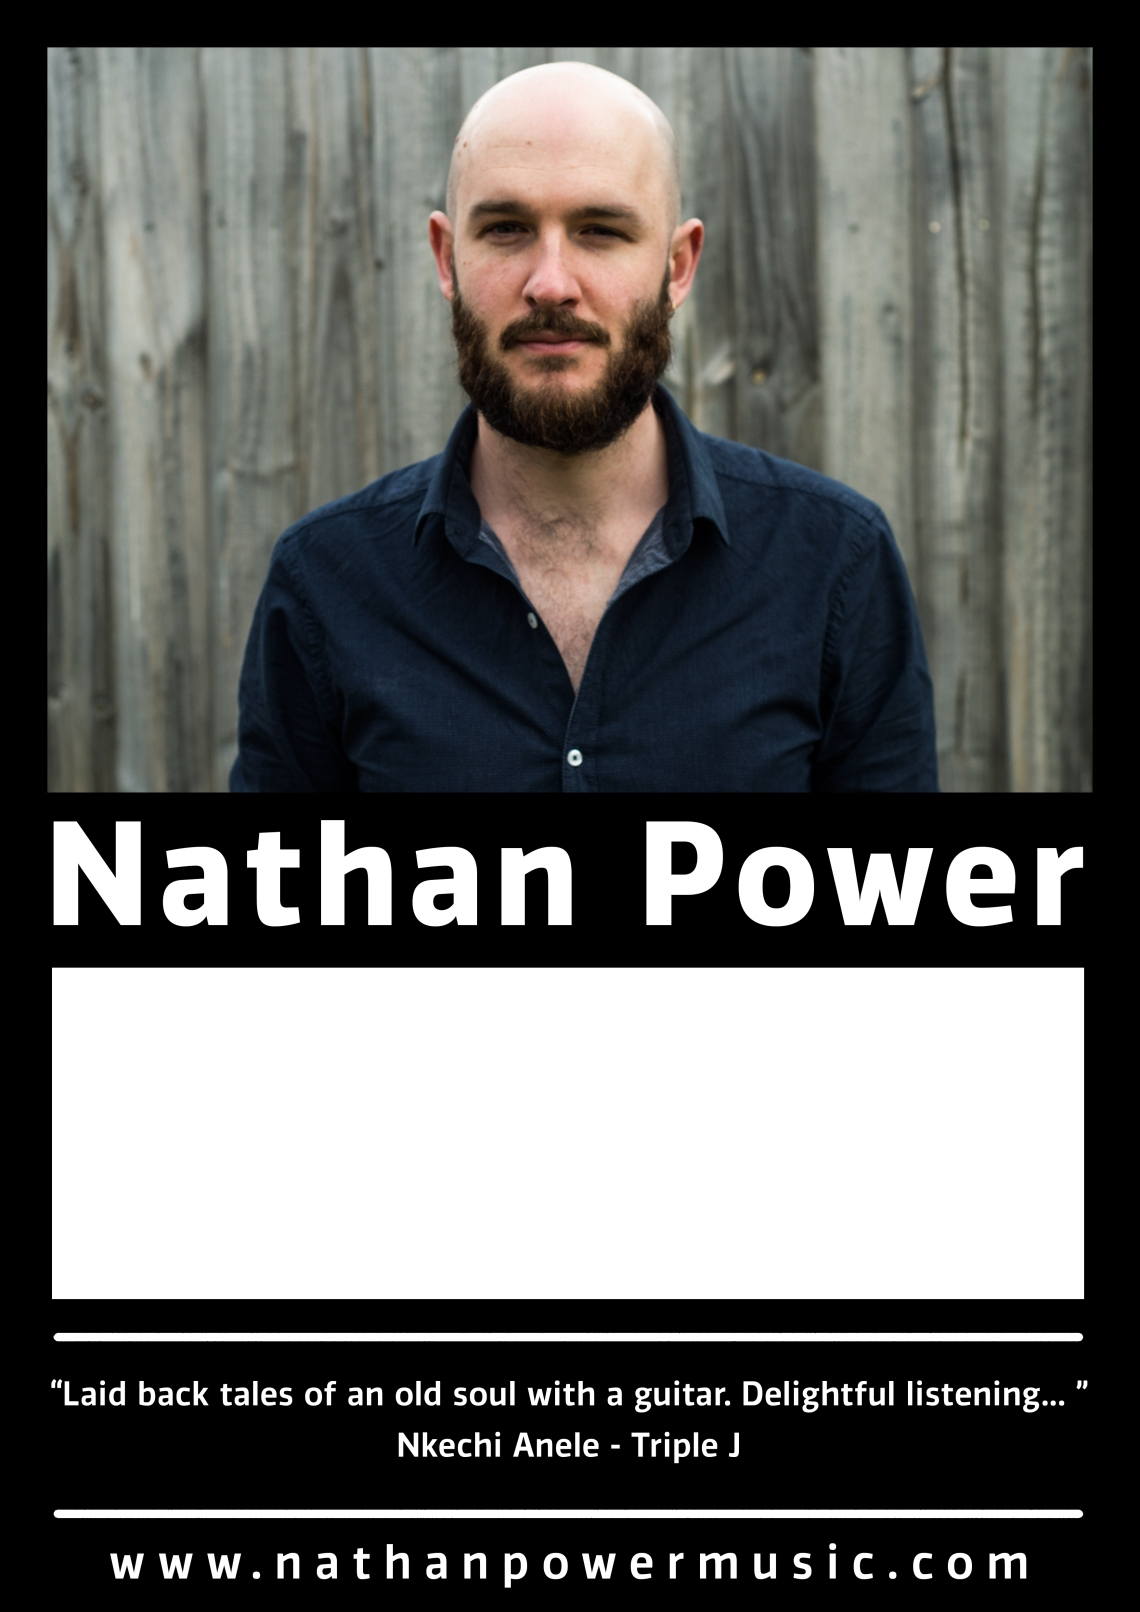 Nathan Power 2019 Tour Poster.jpg